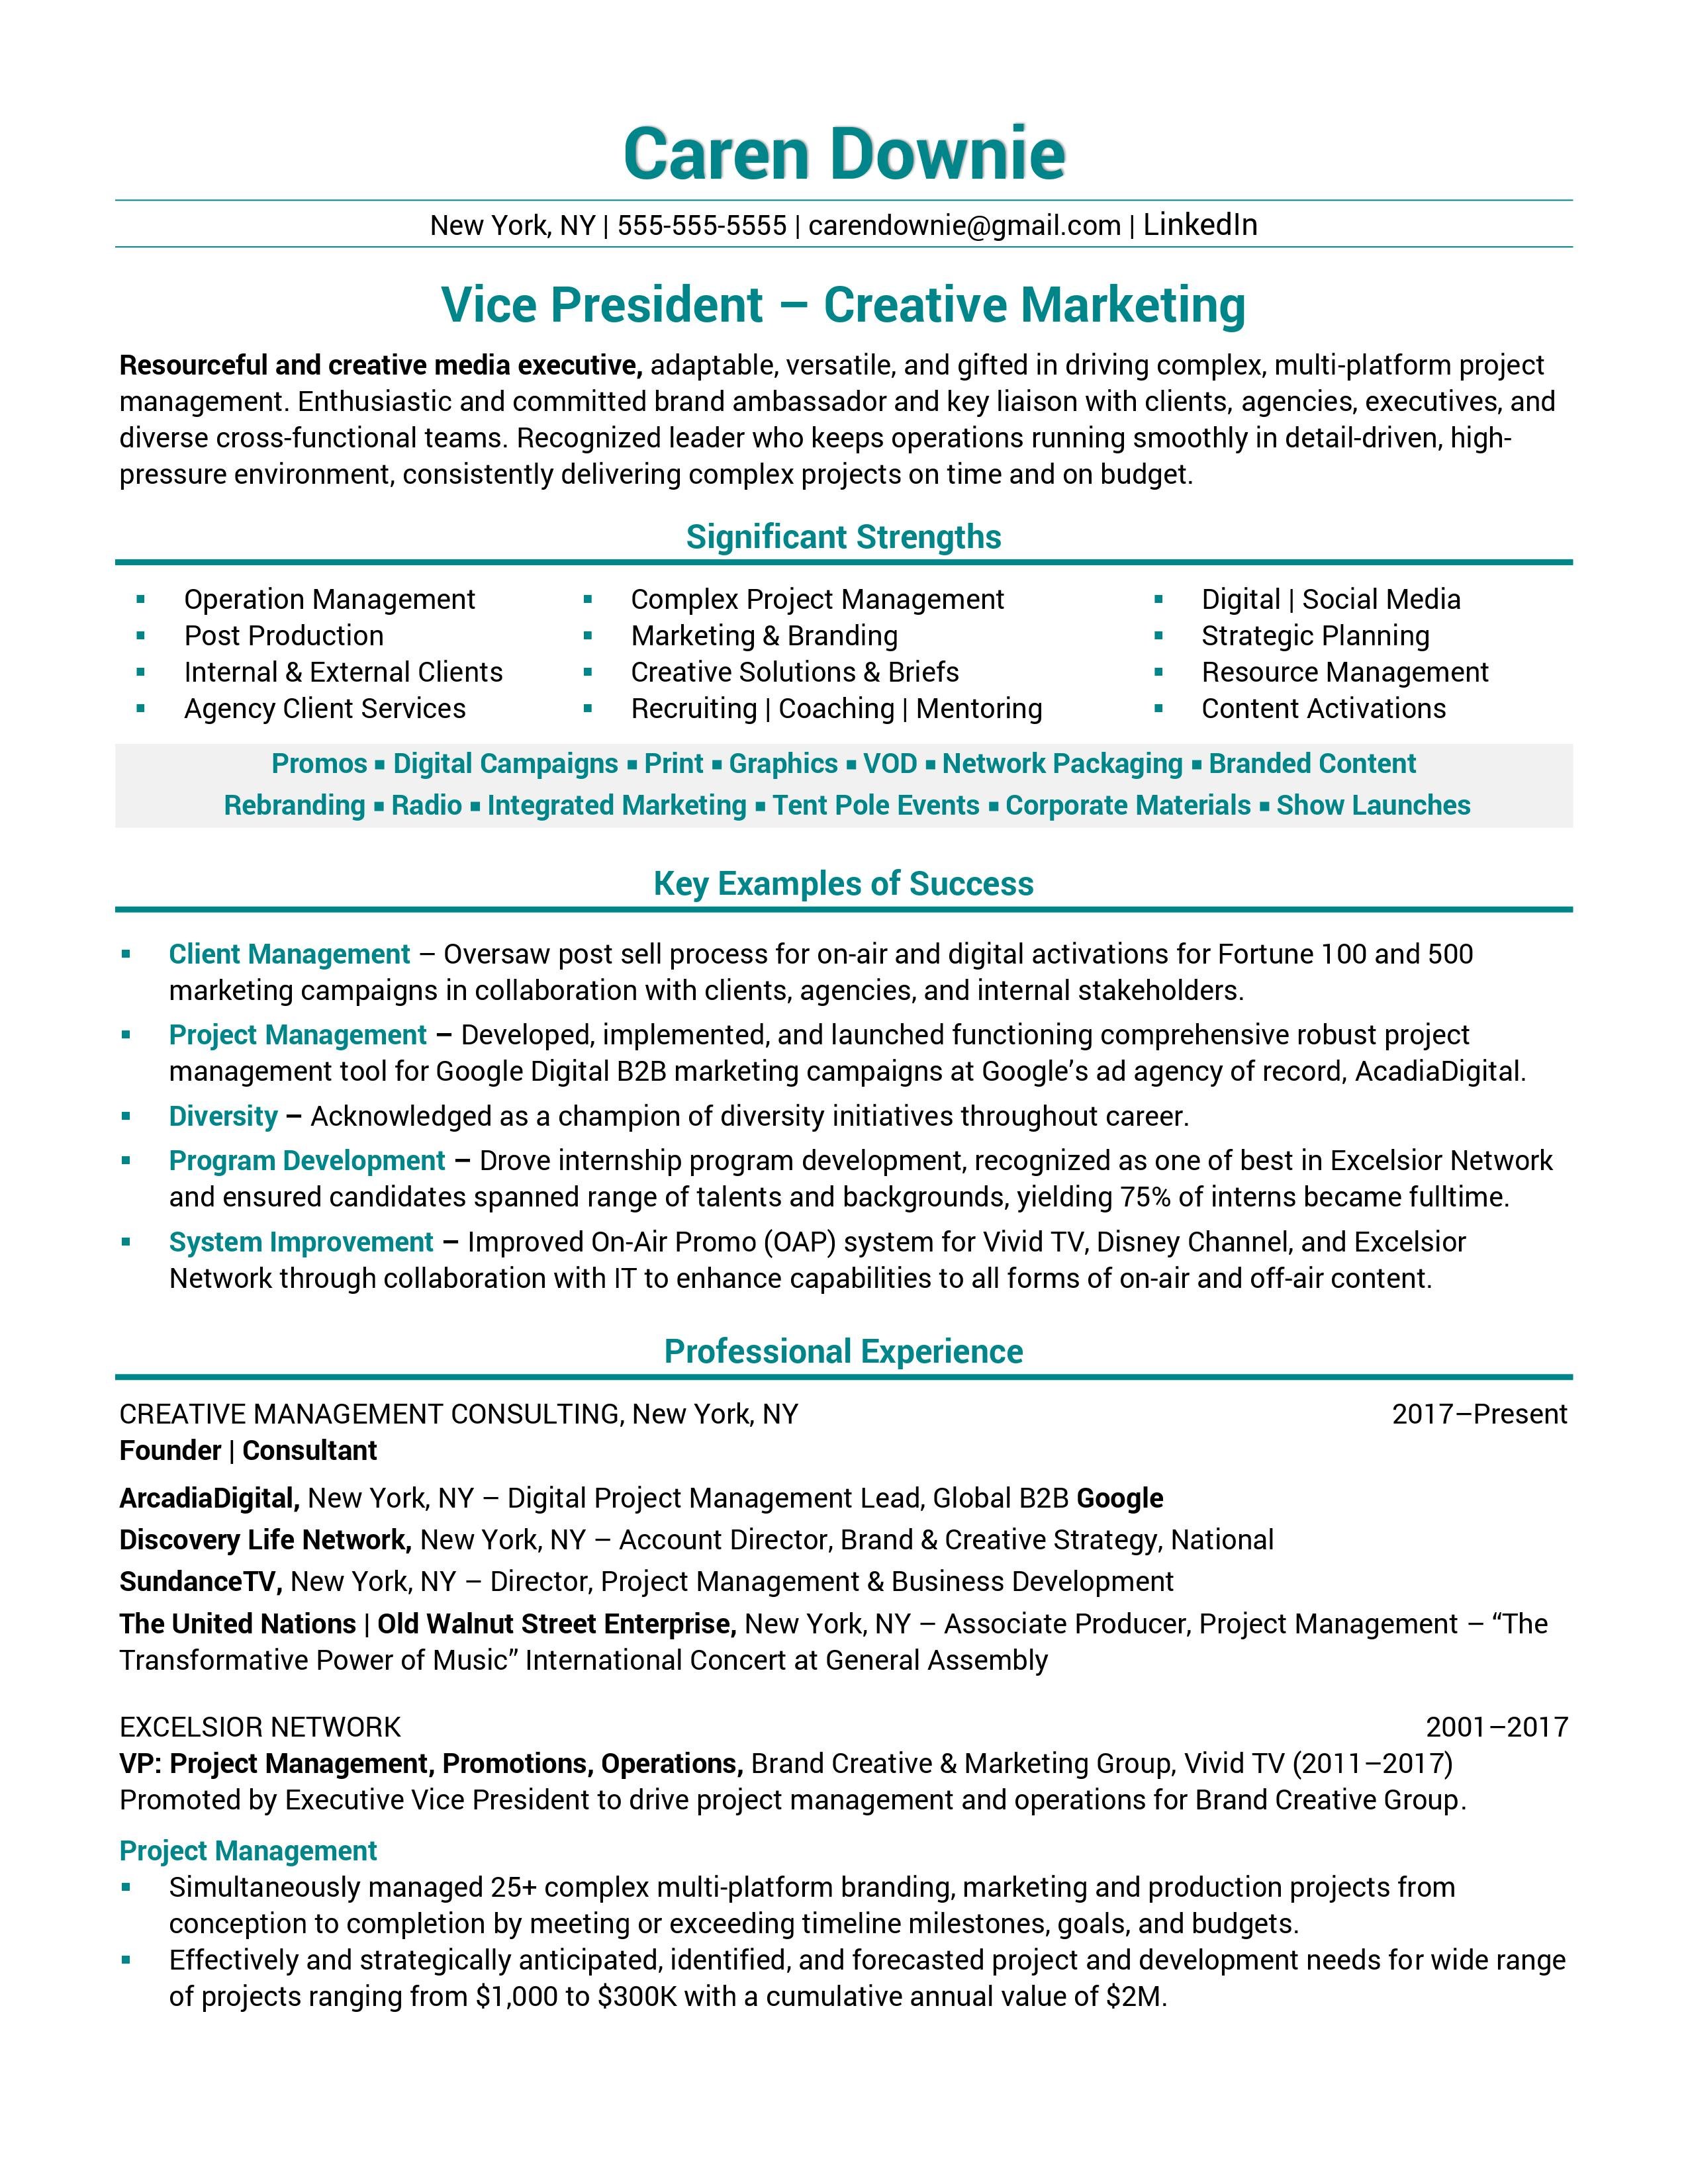 Vice-President-Creative-Marketing-Resume-Sample-1 Vice President Of Information Technology Resume on information technology professional resume, vp information technology resume, director of information technology resume,